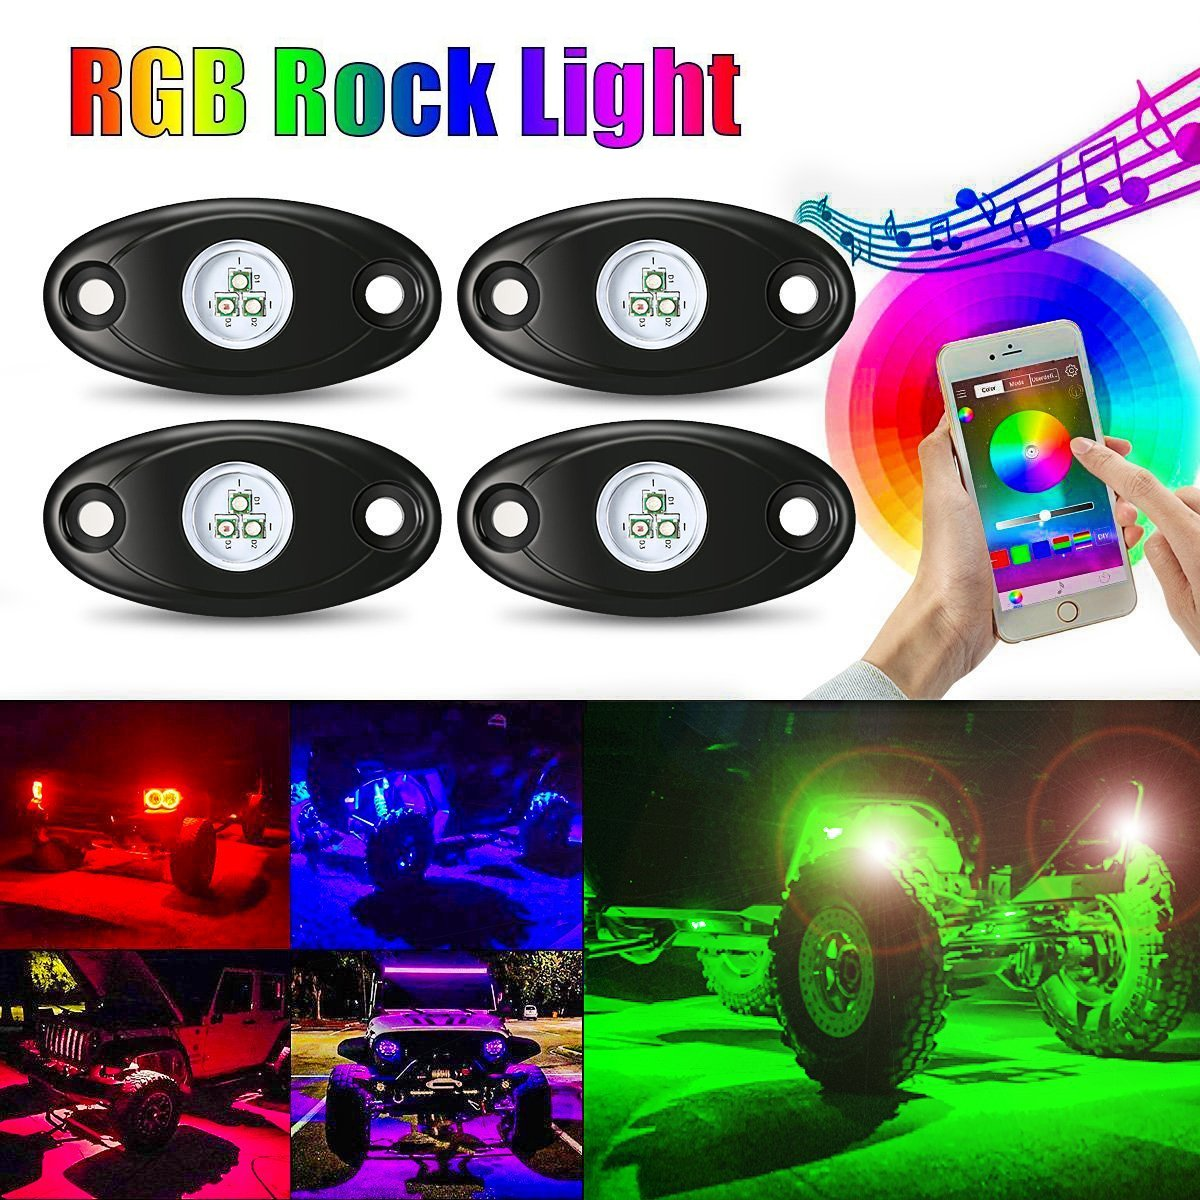 AMBOTHER 4Pcs Car RGB LED Rock Underglow Lights Kit Underbody Waterproof Trail Rig Neon Lights Kit with Cell Phone APP Mini Blue++++tooth Control for JEEP Off Road Trucks Car ATV SUV Vehicle Boat AMBOTHER Mannysen1862